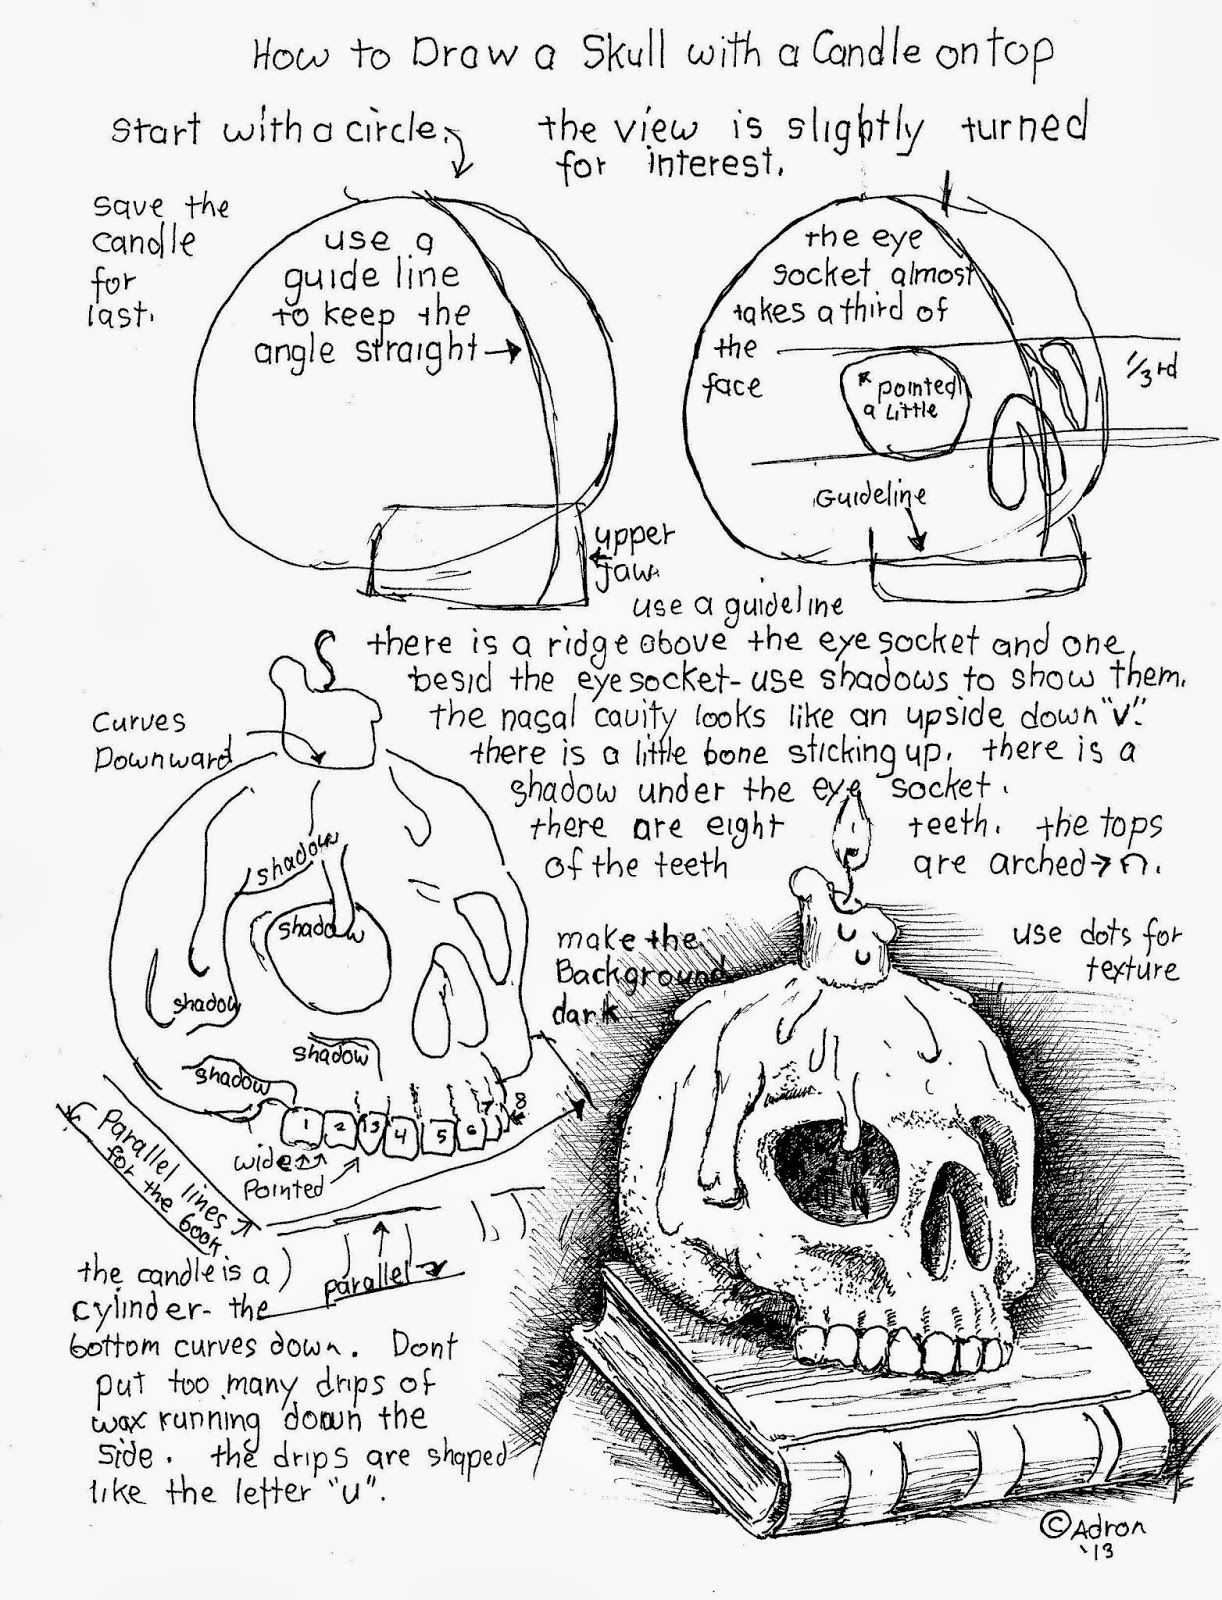 Free How To Draw A Skull With A Candle On Top Worksheet